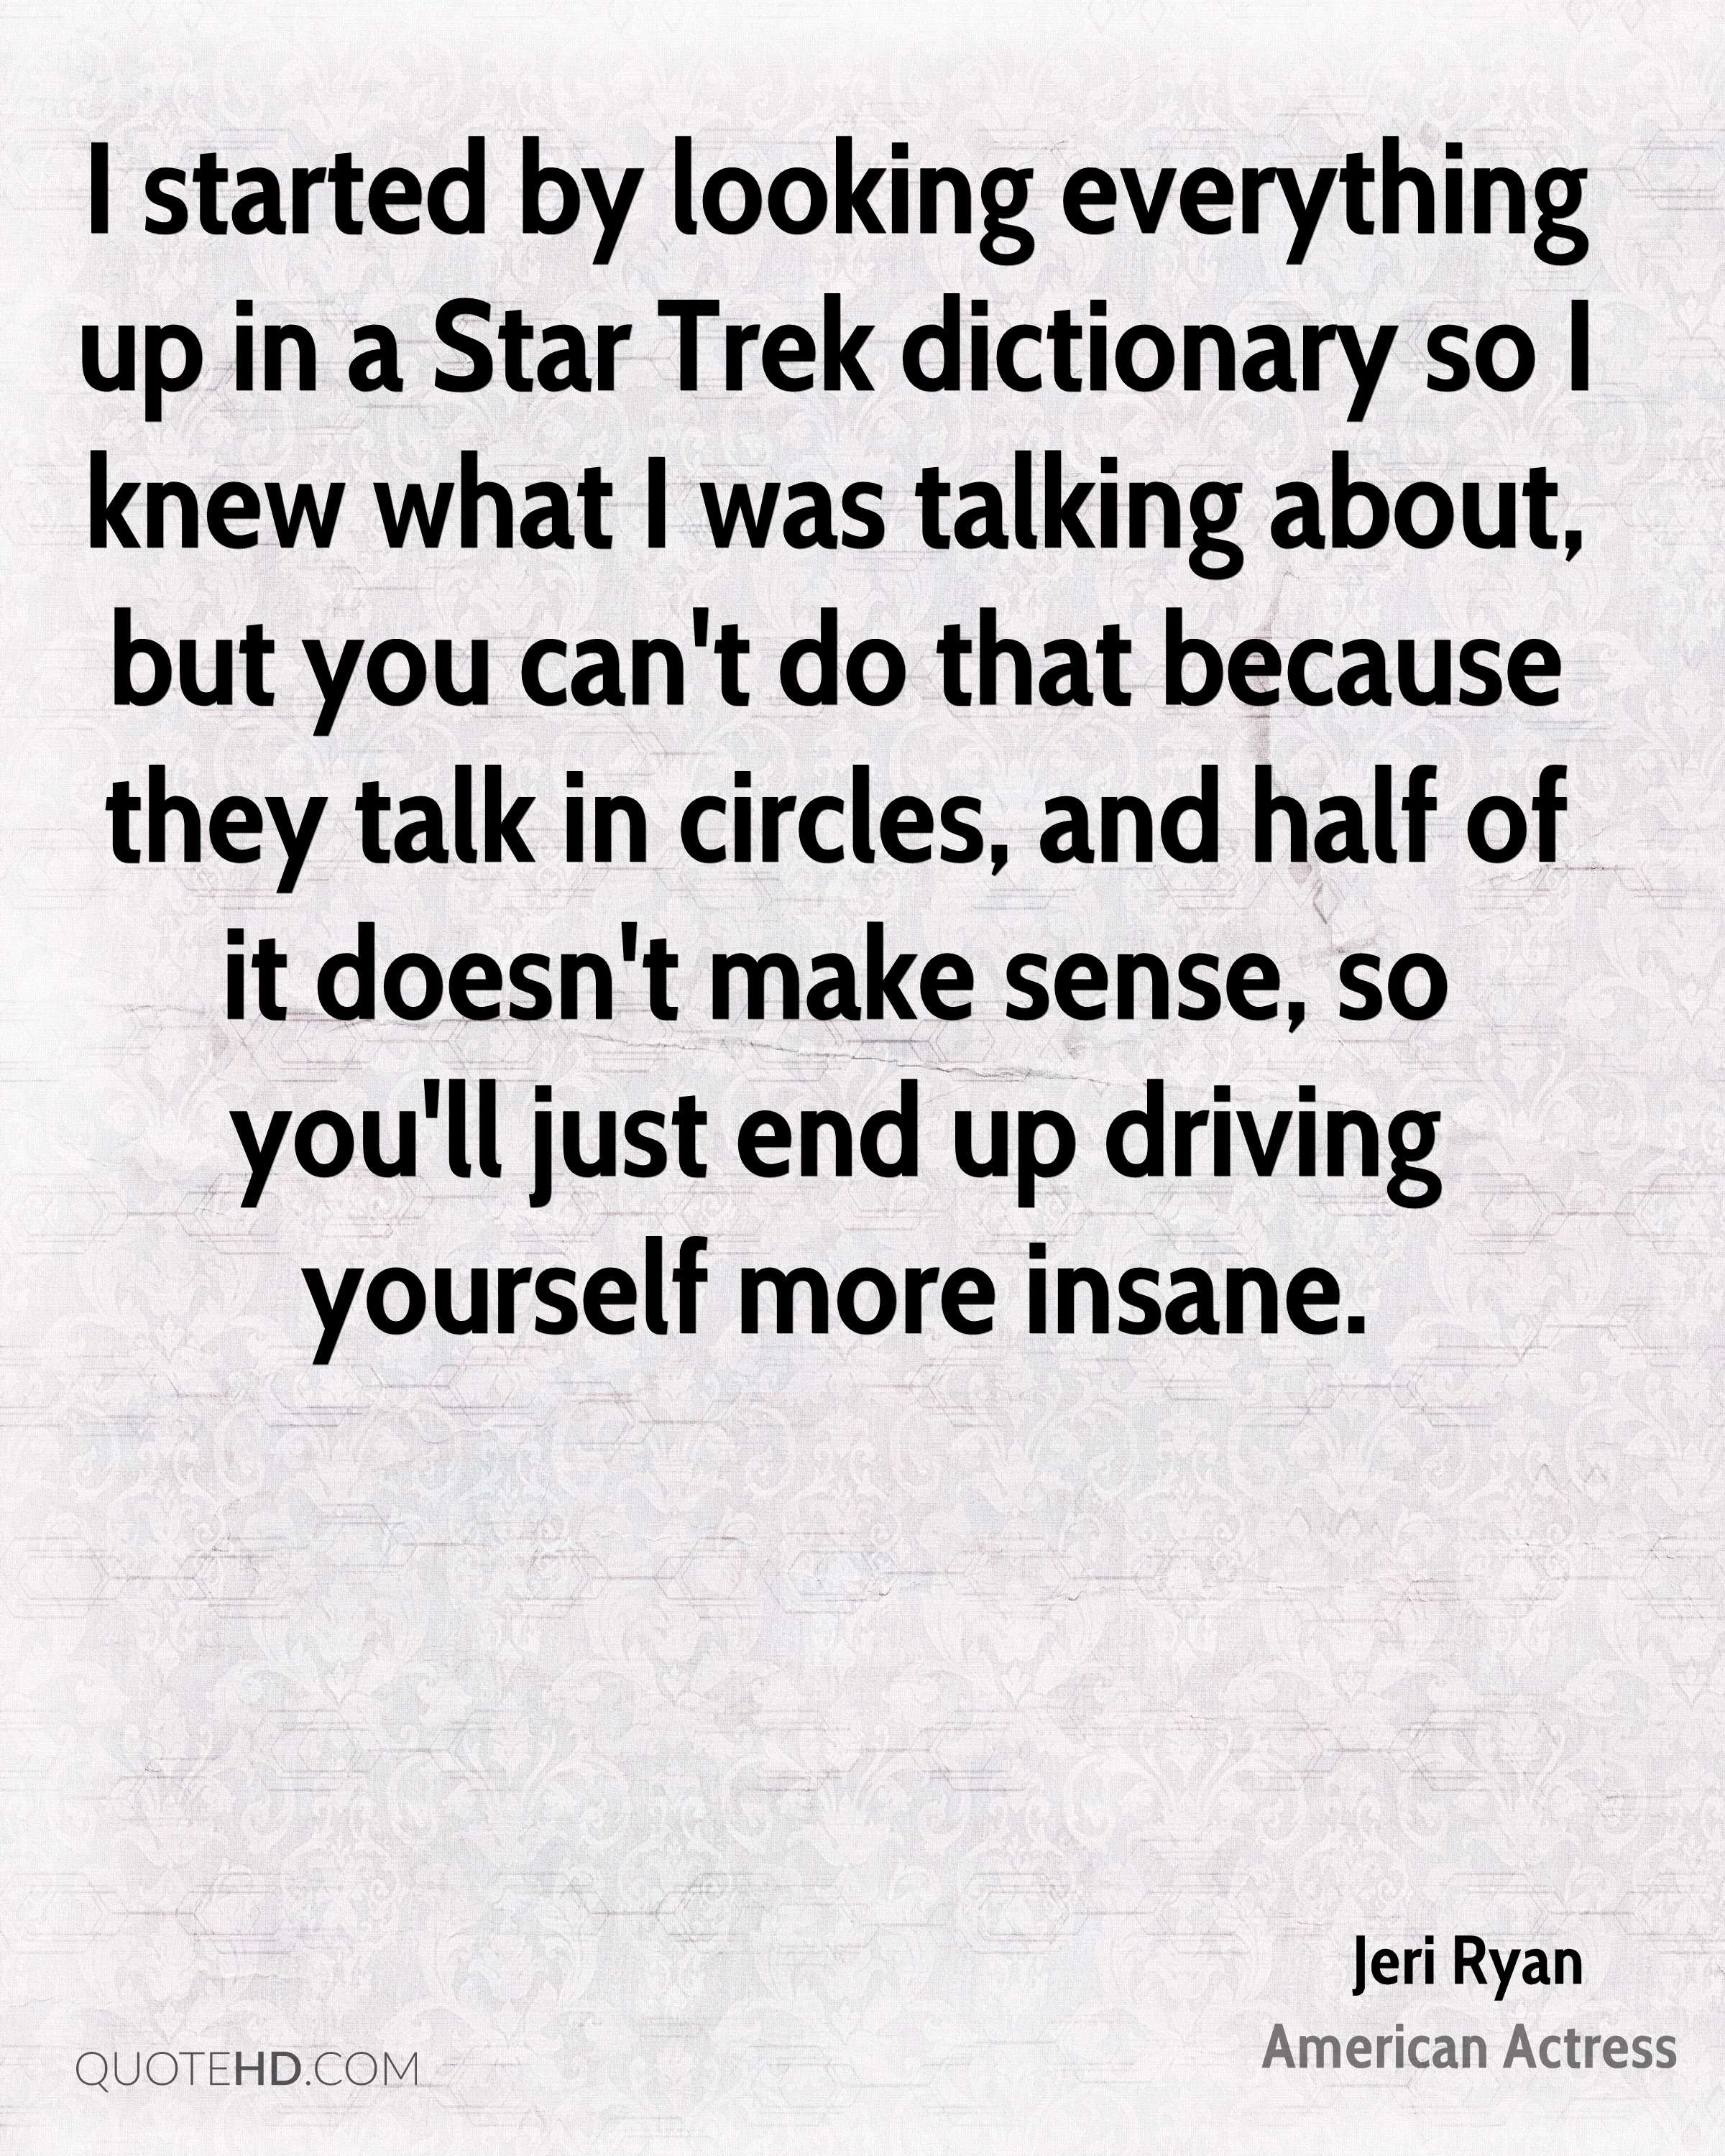 I started by looking everything up in a Star Trek dictionary so I knew what I was talking about, but you can't do that because they talk in circles, and half of it doesn't make sense, so you'll just end up driving yourself more insane.